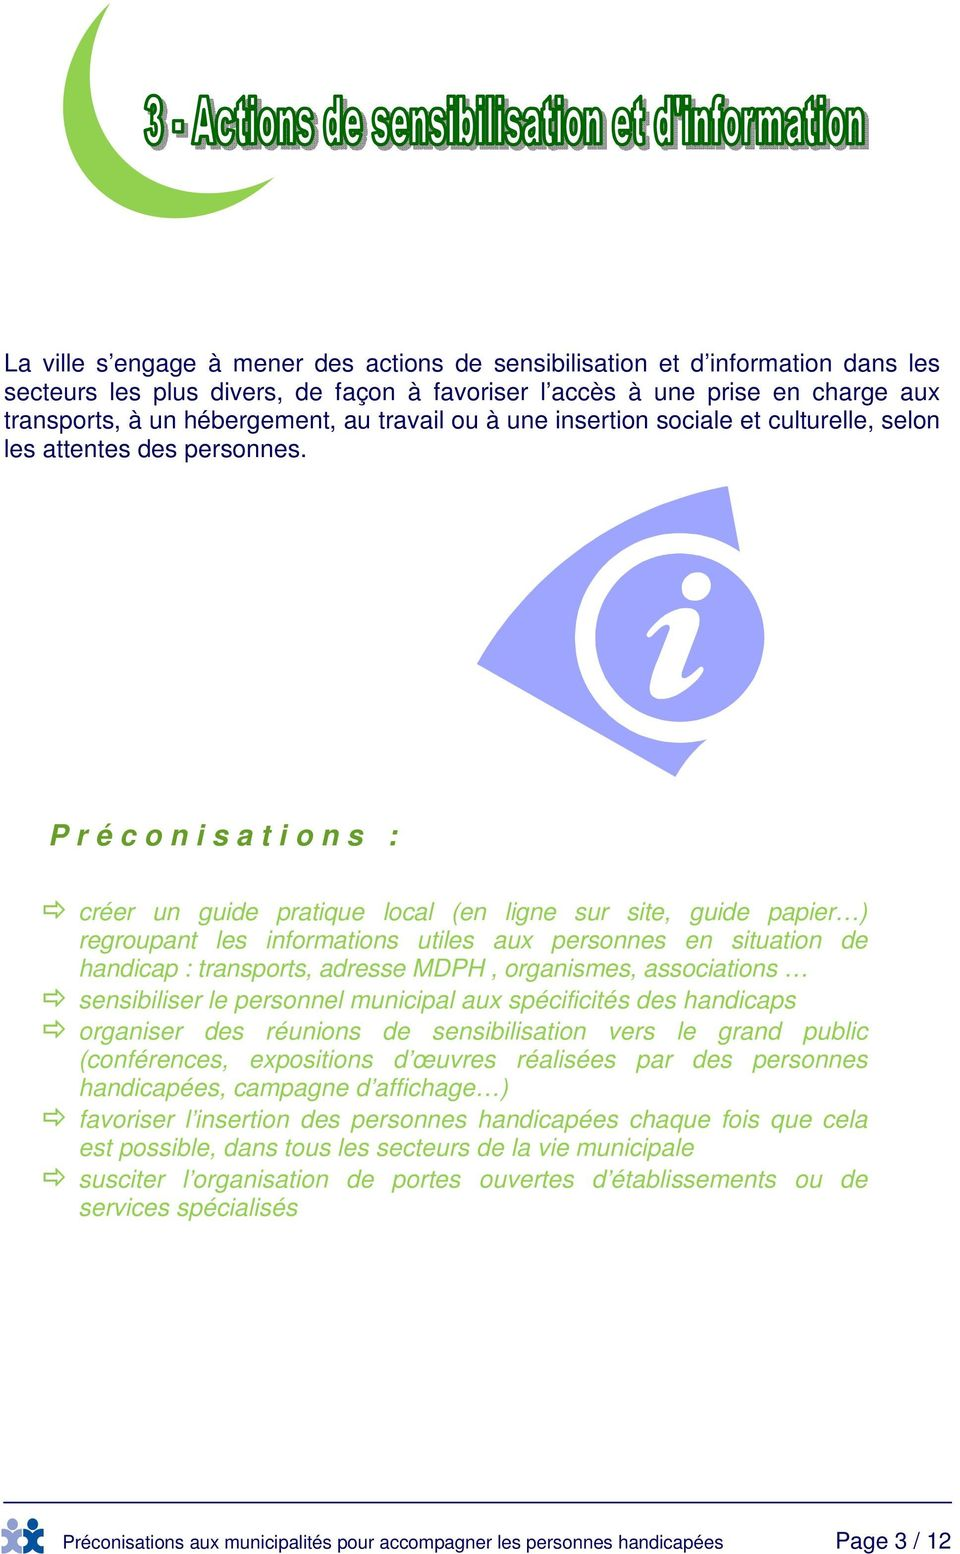 créer un guide pratique local (en ligne sur site, guide papier ) regroupant les informations utiles aux personnes en situation de handicap : transports, adresse MDPH, organismes, associations